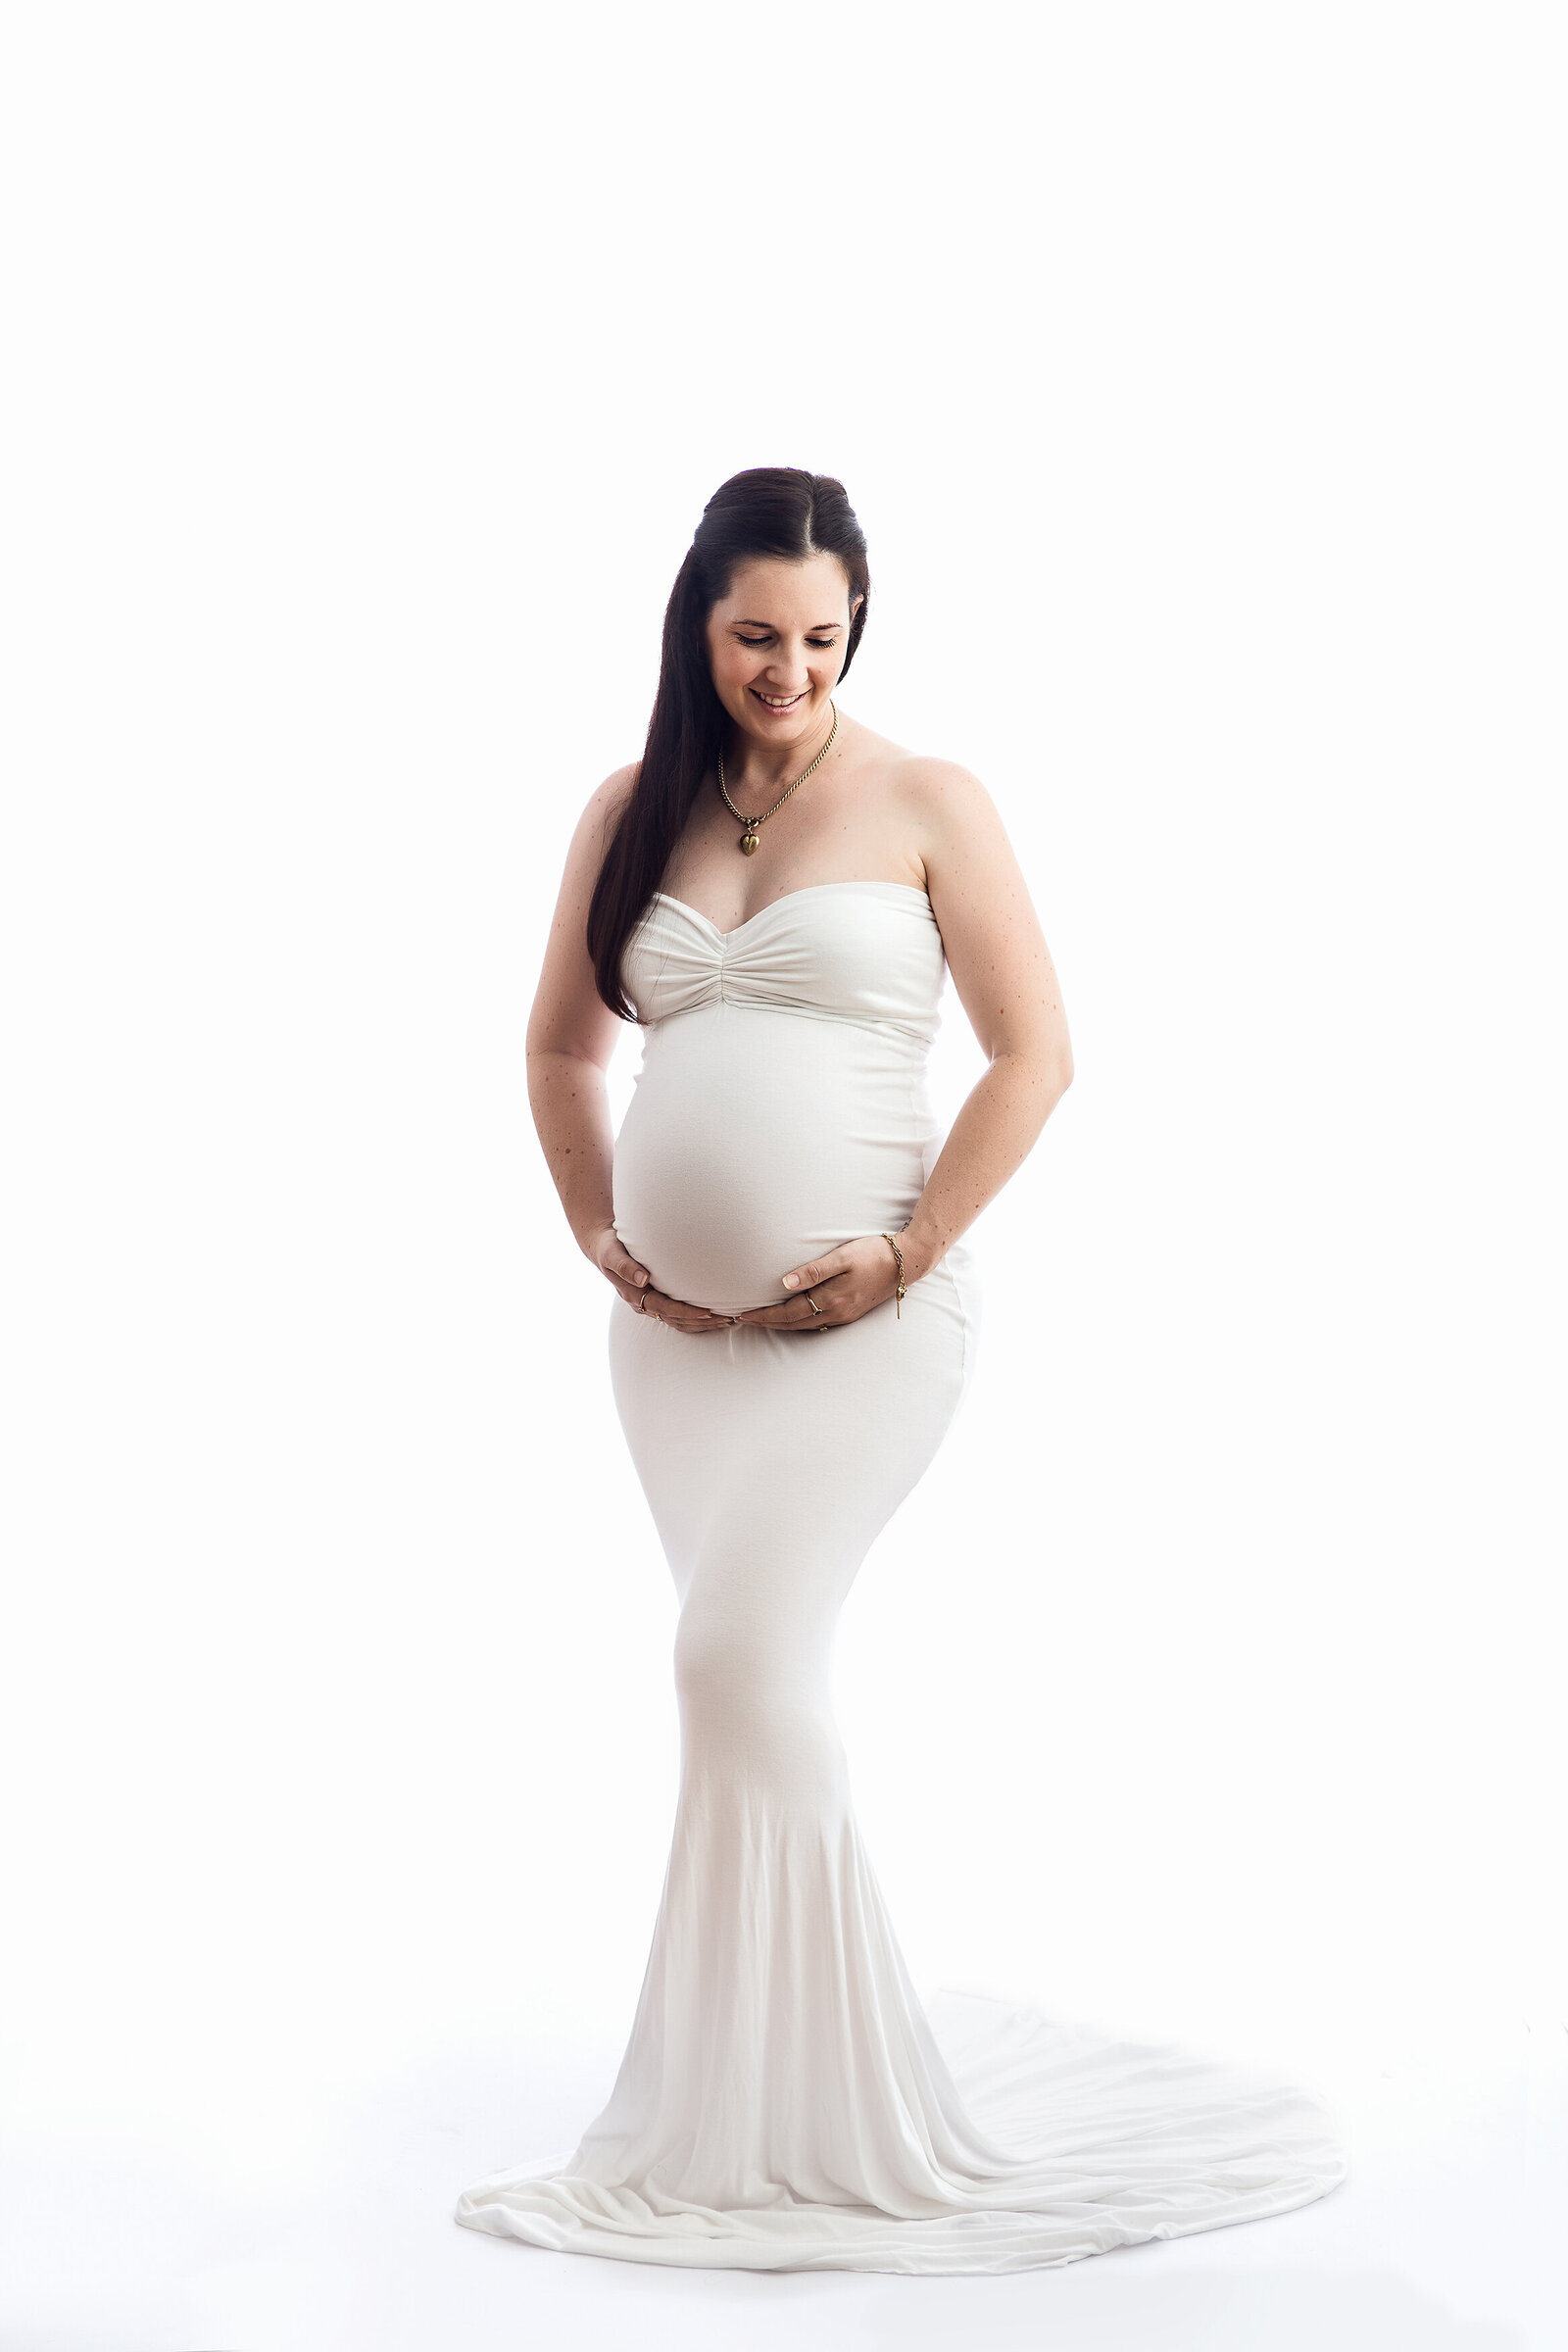 Professional maternity portrait in-studio, pregnant lady in long white dress